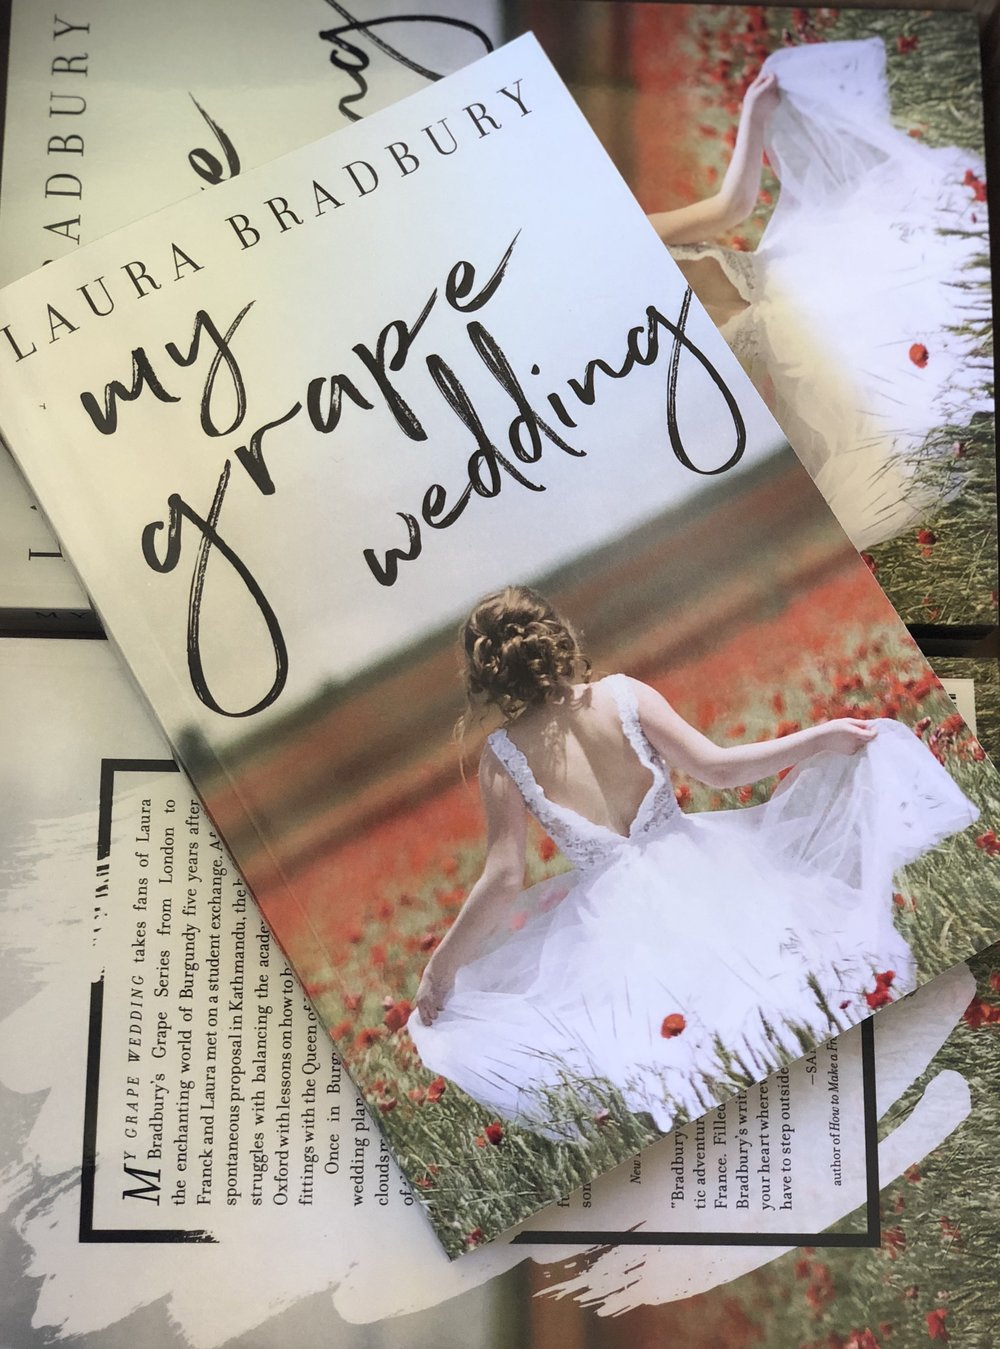 New edition of My Grape Wedding, packed full of bonus features and All The Romance.